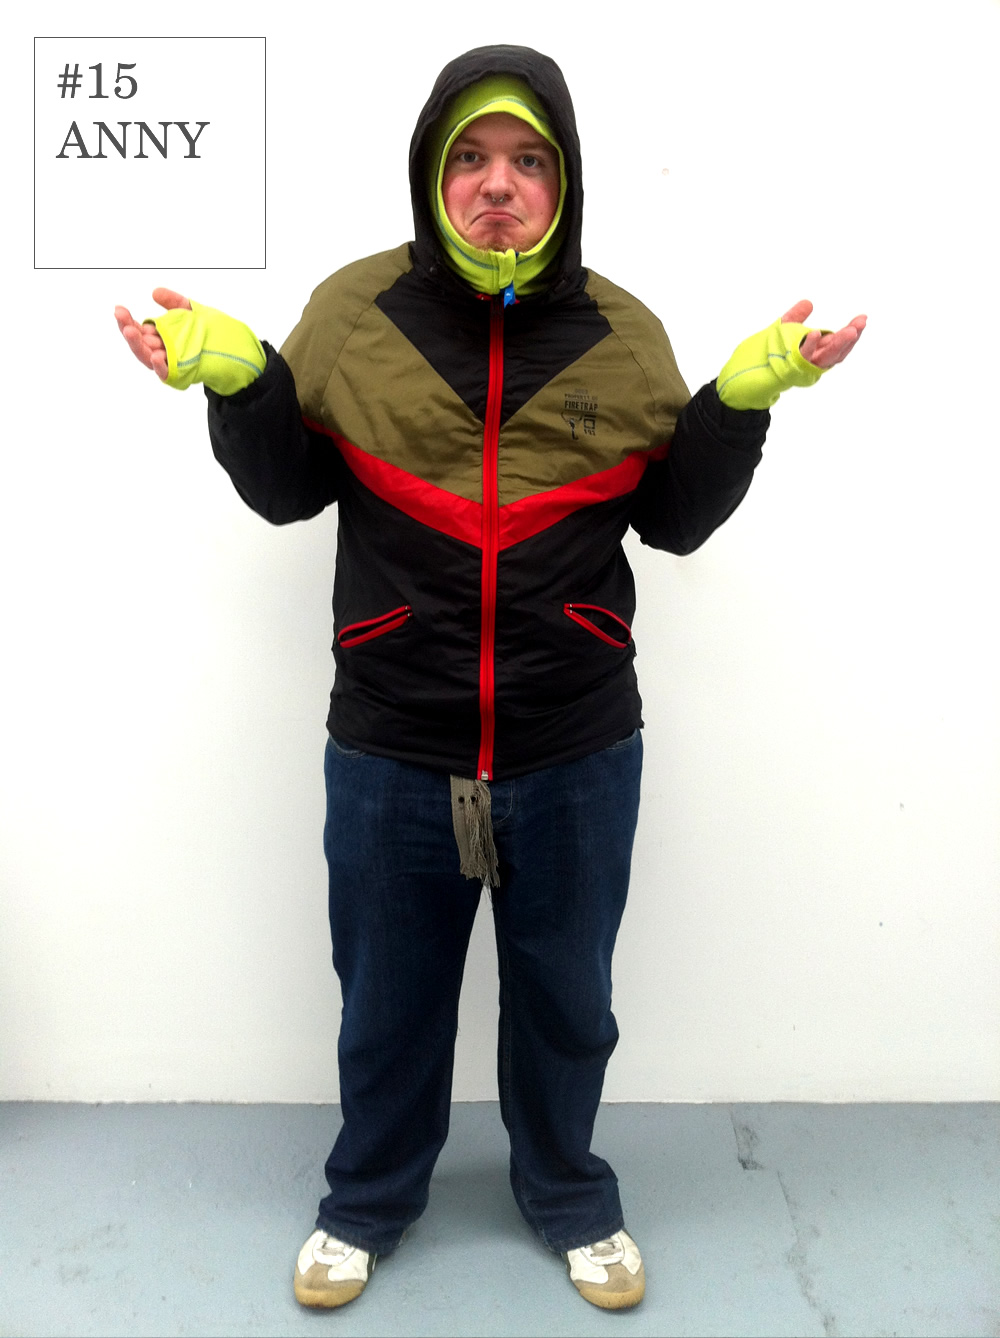 """Anny's layered outfit shows that he's always prepared for any weather condition he may encounter on his journey to Folk.    A flash of neon,nonchalant expression and casual stance say """"What?…it's only rain.""""    Jacket: Firetrap     Top: Quiksilver     Jeans: FCUK     Shoes: Onitsuka Tiger"""